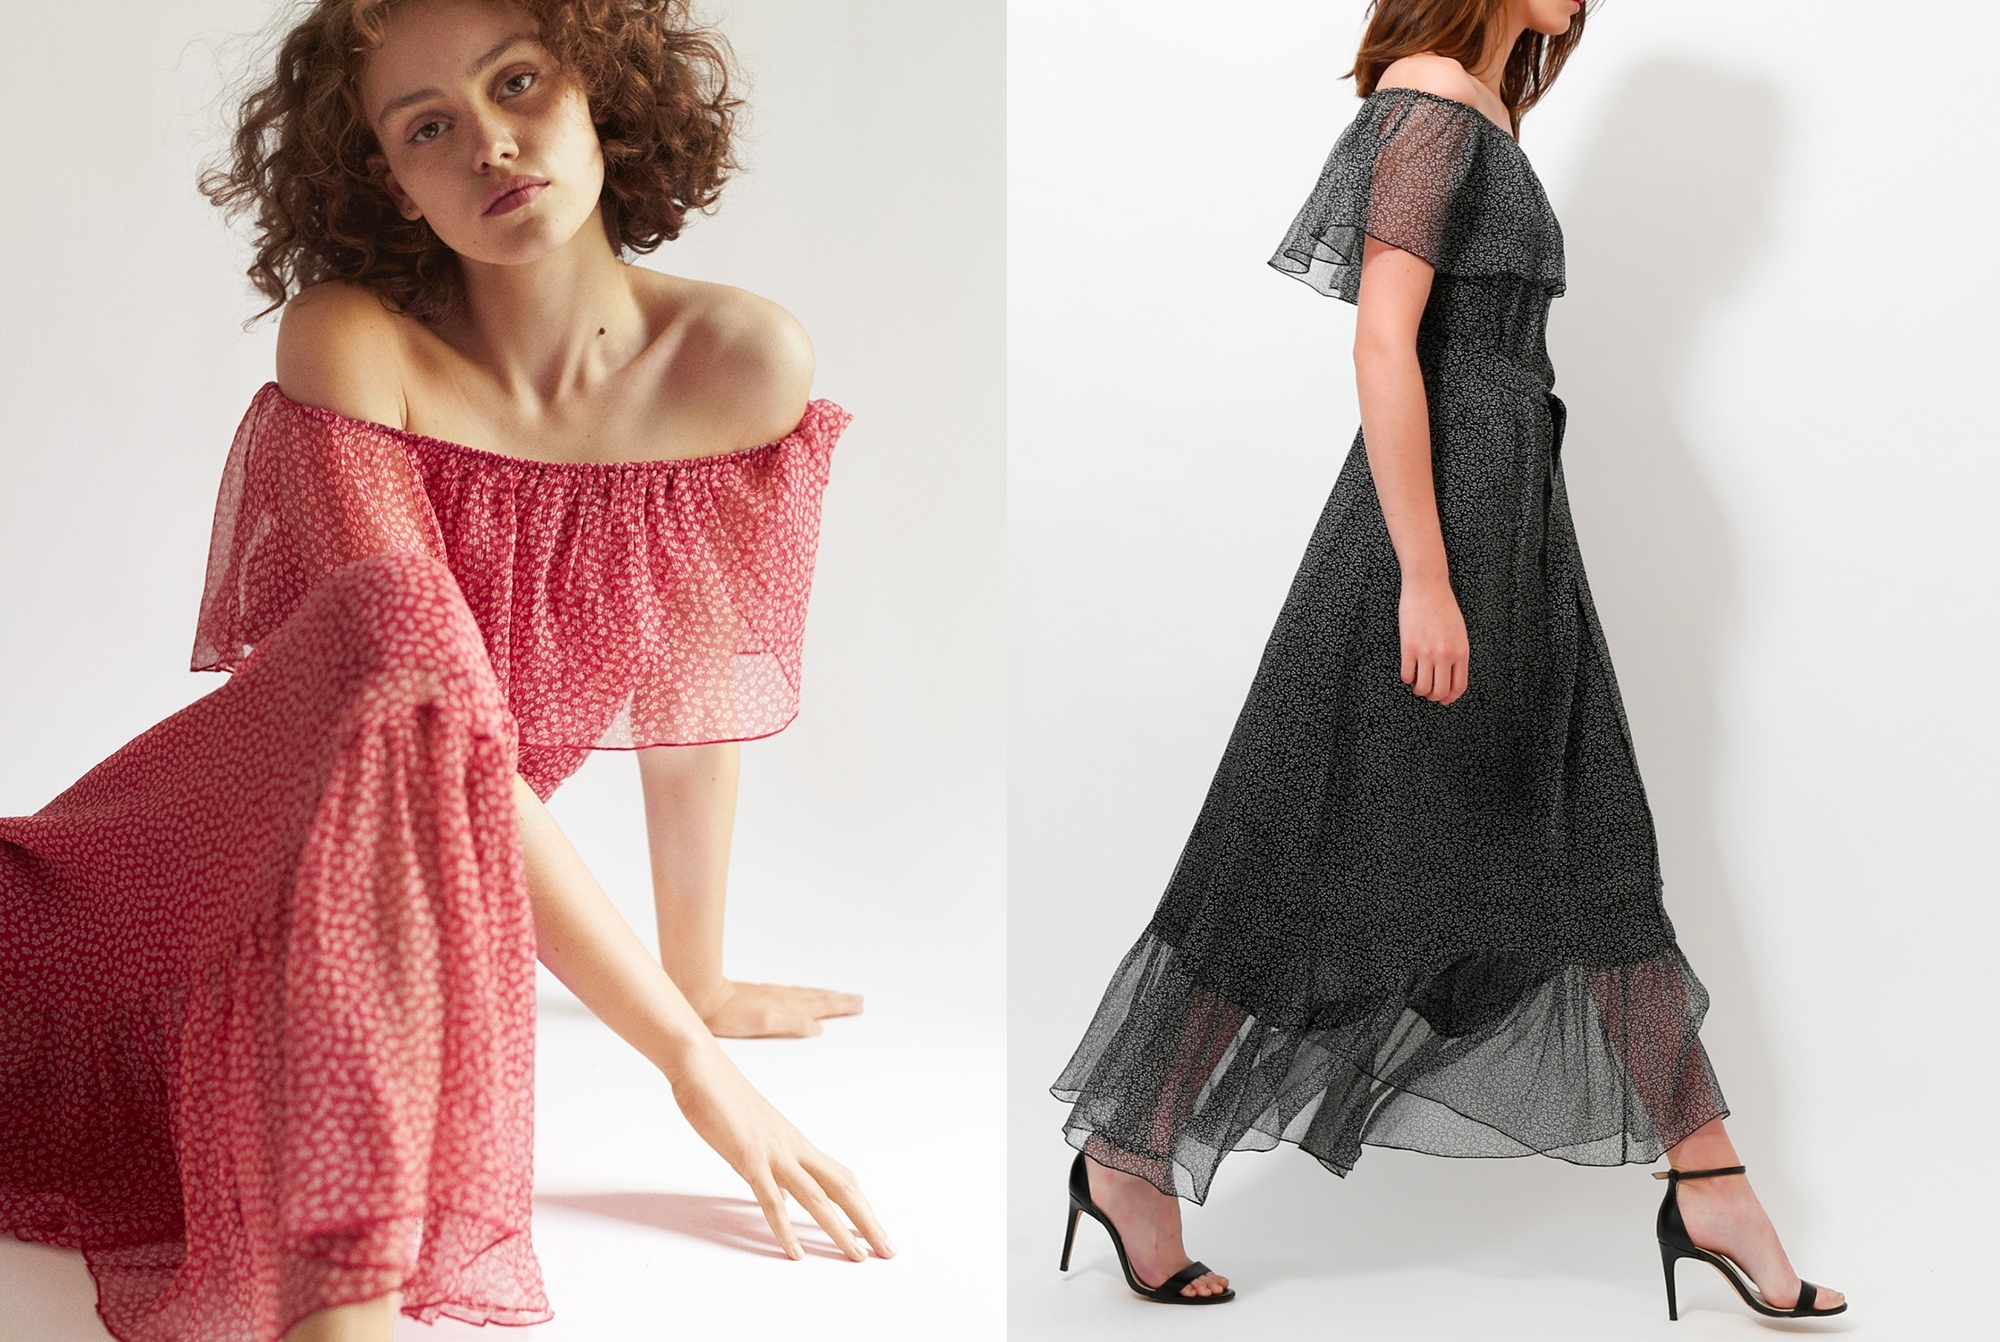 Stand out at your Spring events with the Alma Dress that marries bohemian glamour with modern ease.